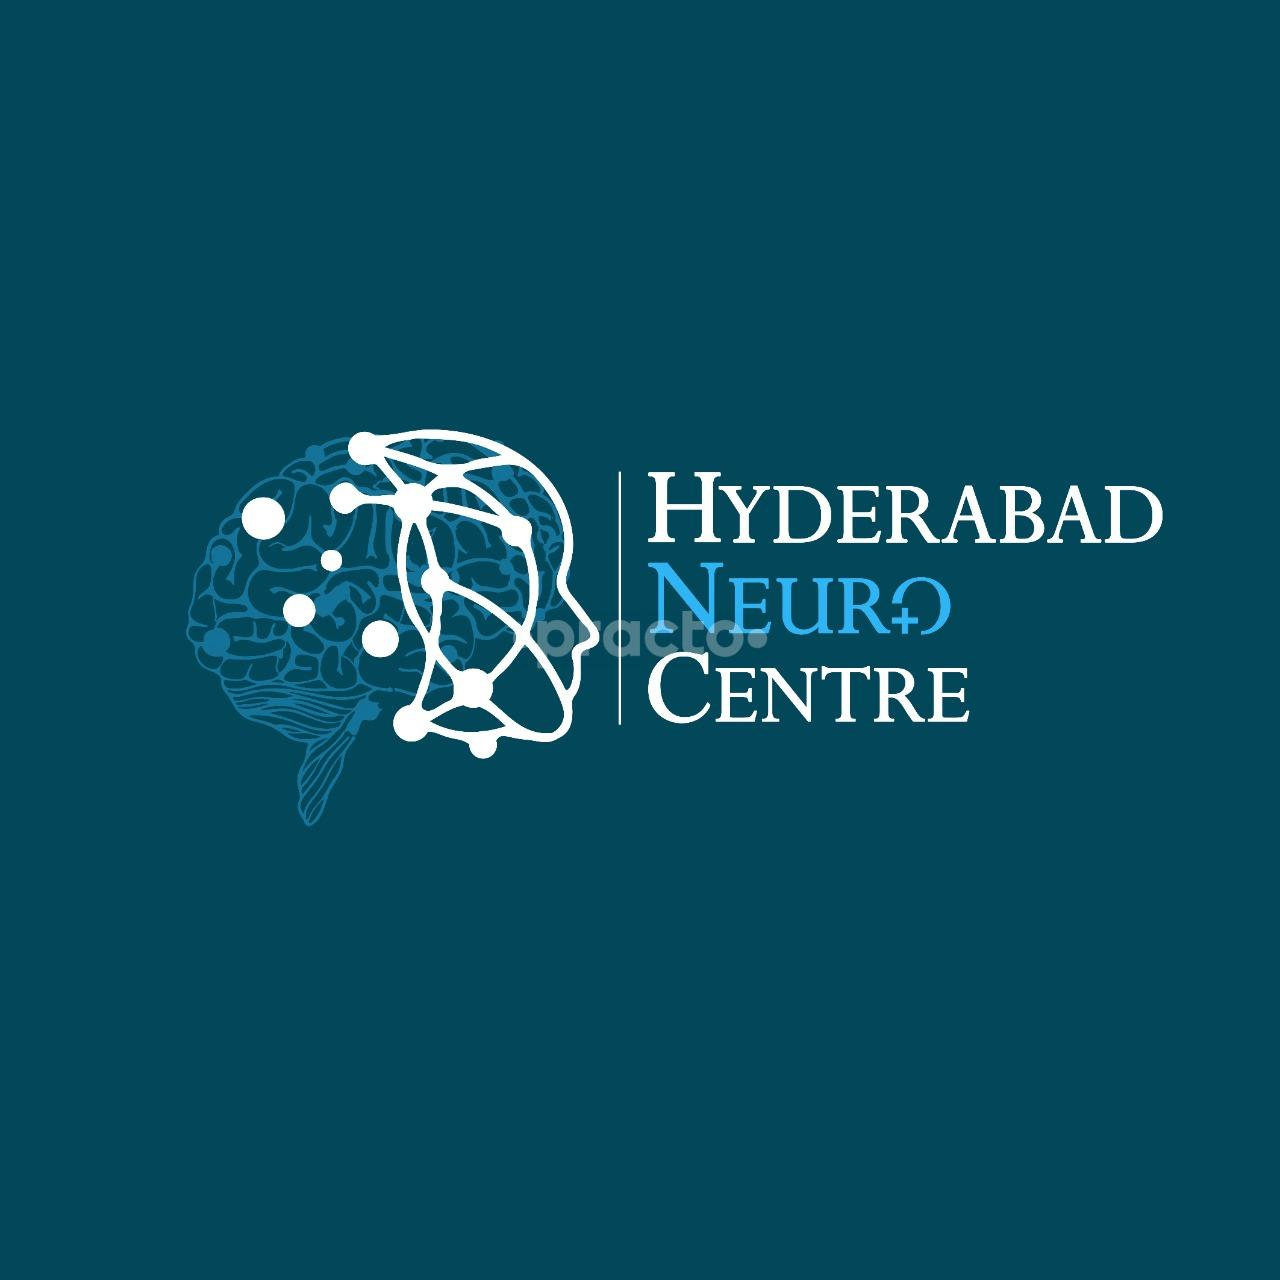 Hyderabad Neuro Centre